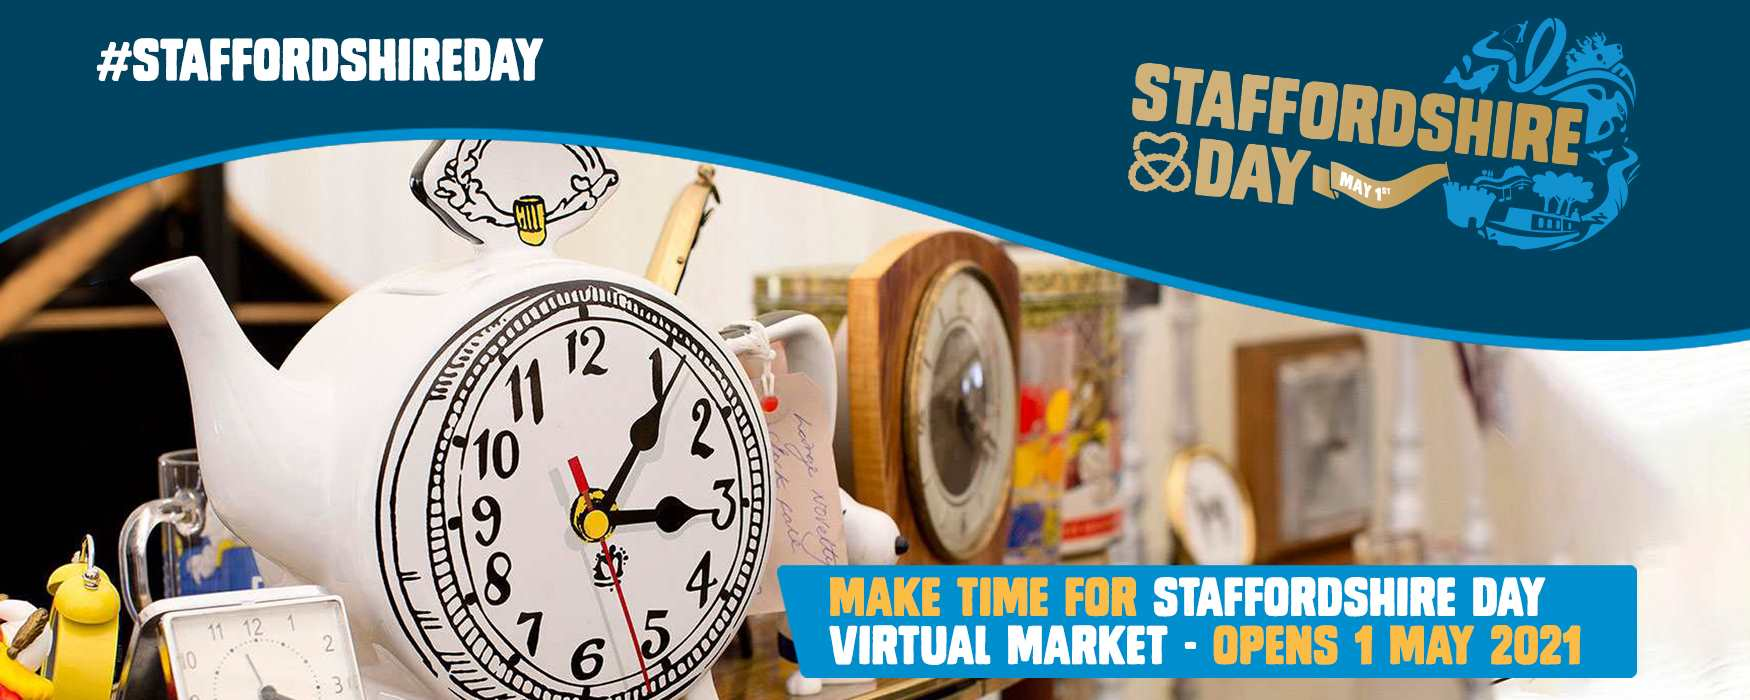 Staffordshire Day Virtual Market infographic. Click to visit the virtual market webpage.